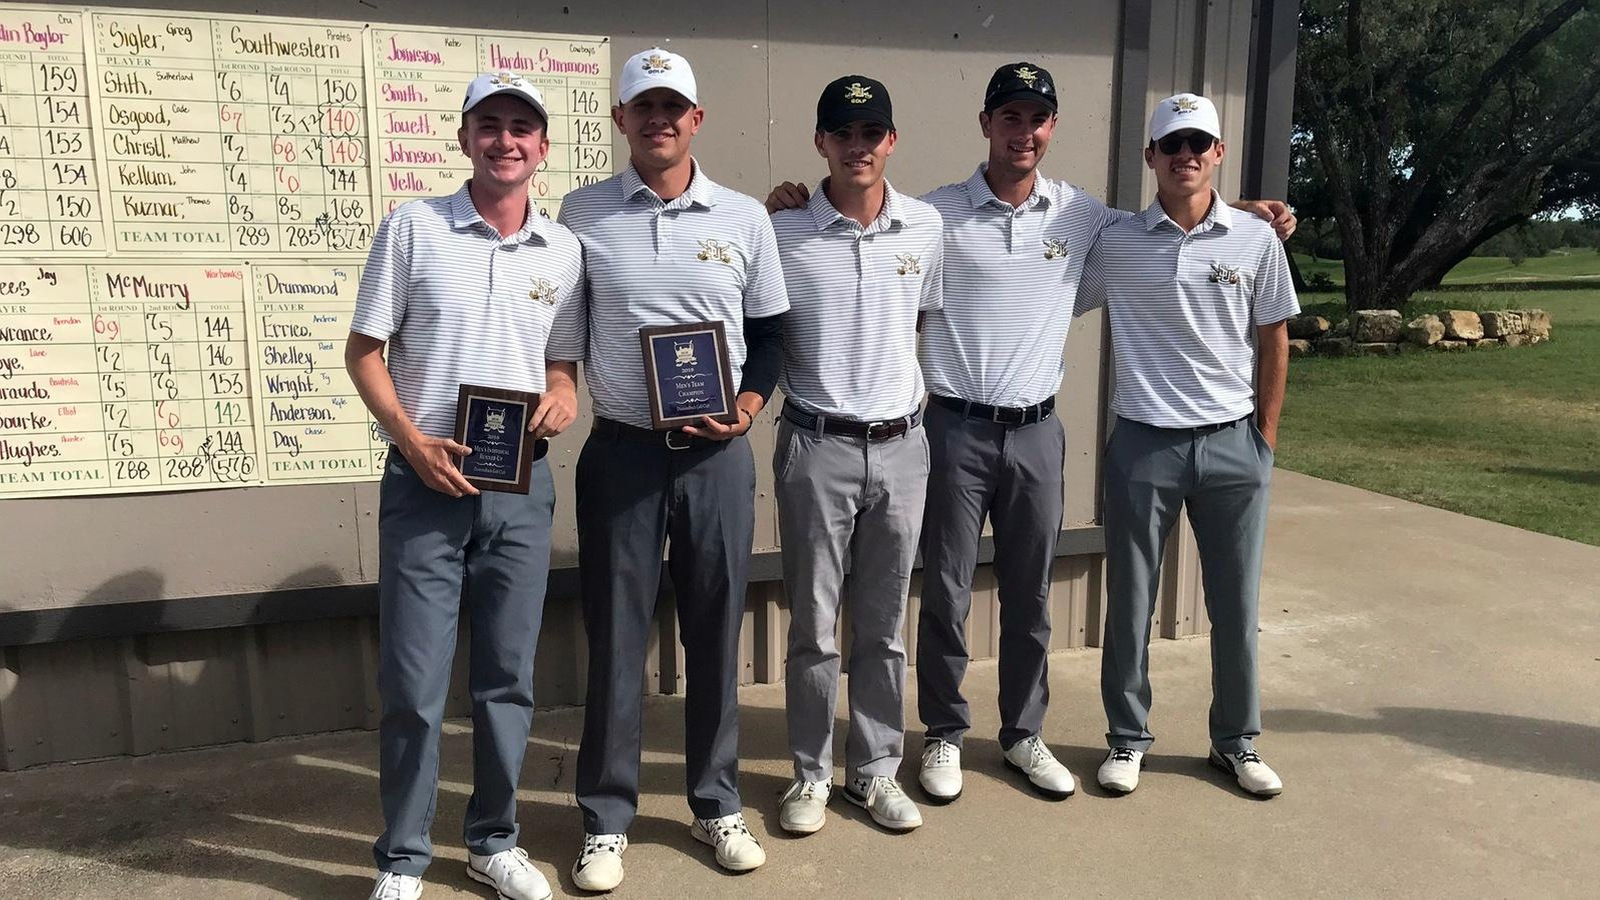 Men's Golf Wins Abilene Invitational To Close Its Fall Schedule